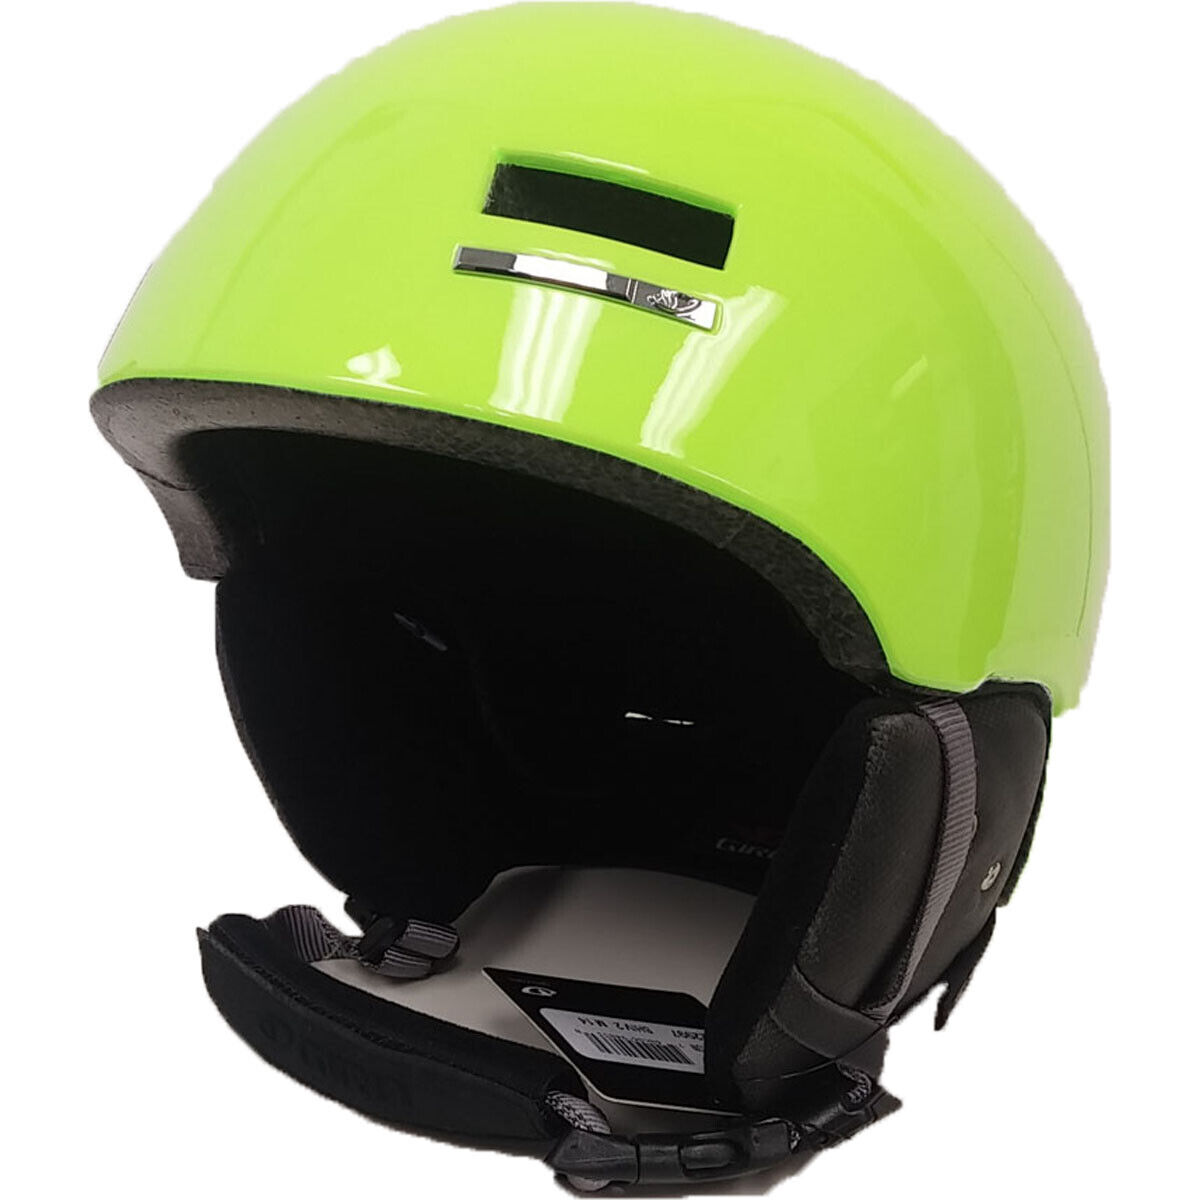 Giro Shiv 2 Snowboard Skiing Snow Helmet Hilite Yellow Adult Medium M 55.5 59 cm